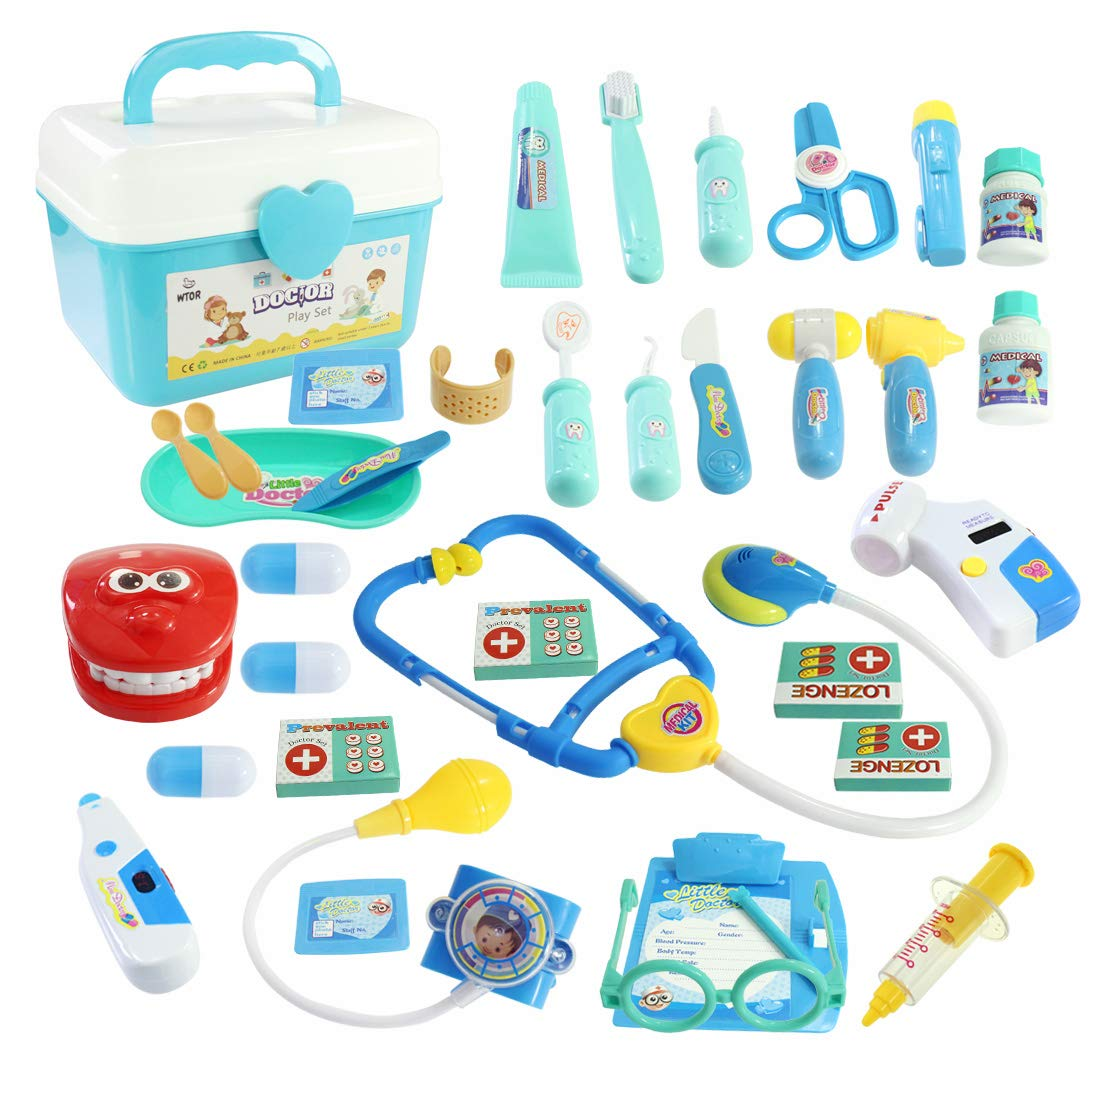 WTOR Toy 36Pcs Doctor Kit Pretend Play Doctor Set Toys Medical Kit for Toddler Boys Girls Children's Birthday School Classroom and Doctor Role Play